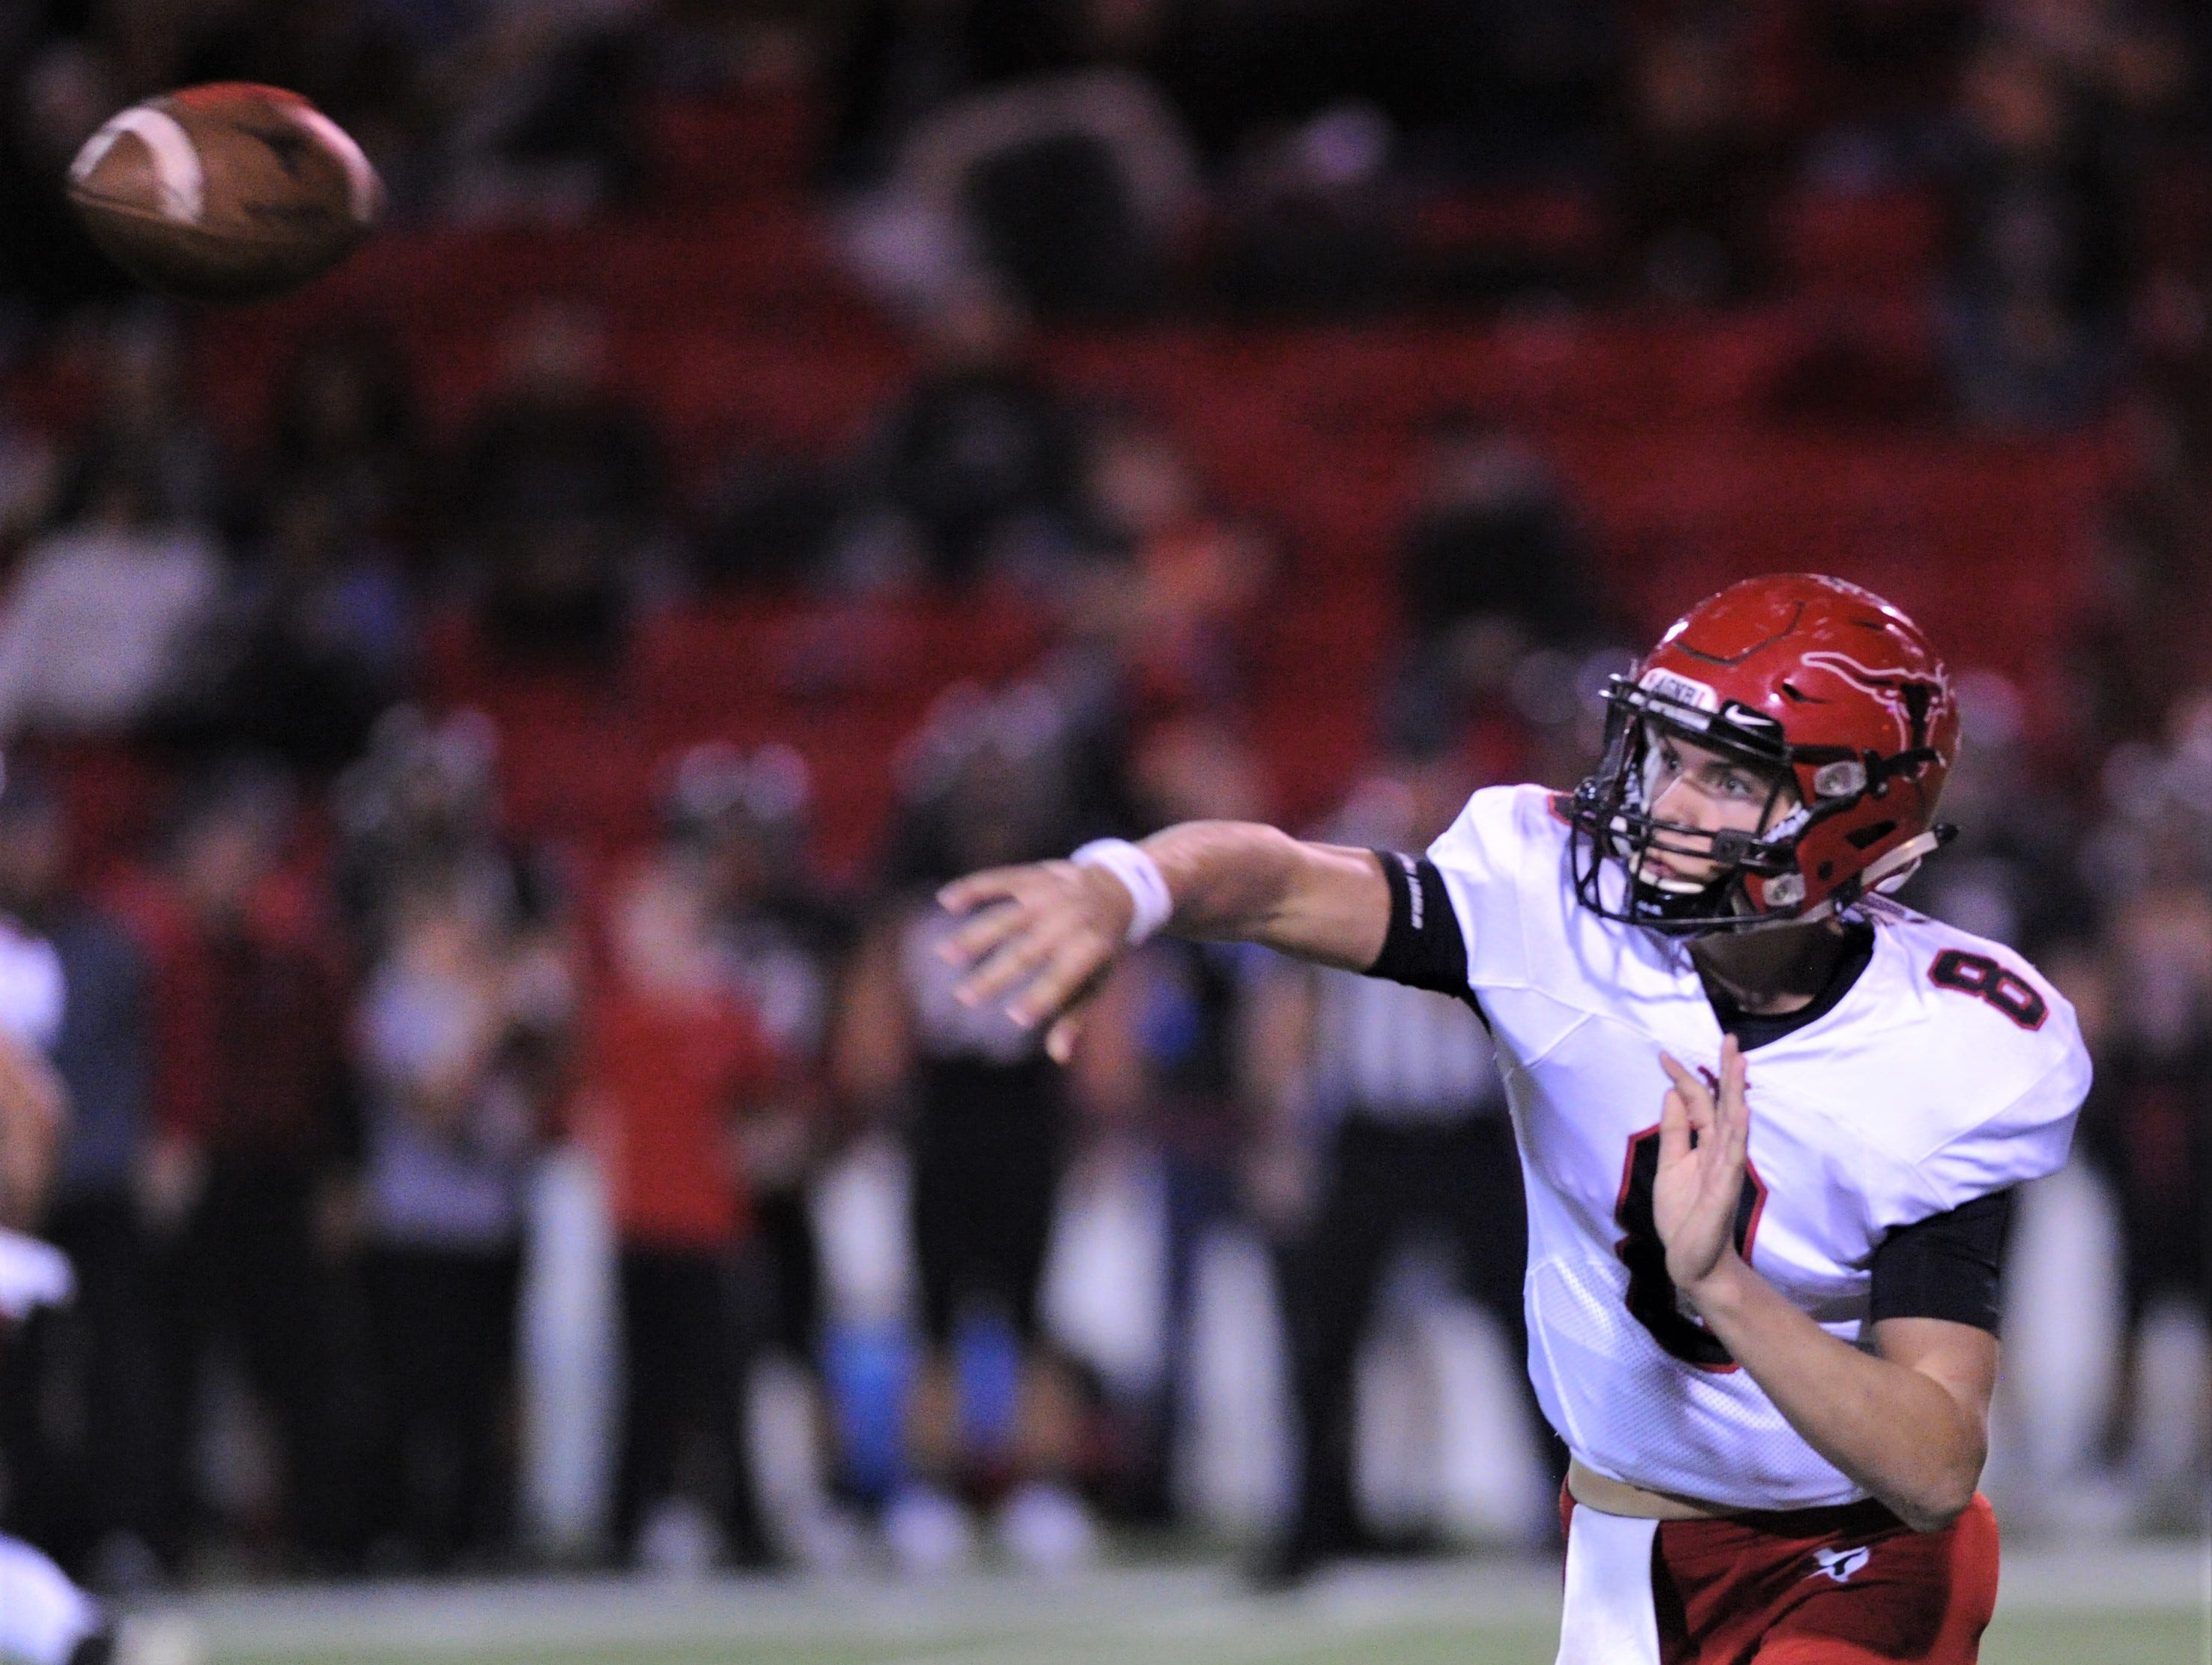 Eastland quarterback Behren Morton throws a pass in the first half against Shallowater. Shallowater beat the Mavericks 56-21 in the Region I-3A Division I semifinal playoff game Thursday, Nov. 29, 2018, at the Mustang Bowl in Sweetwater.